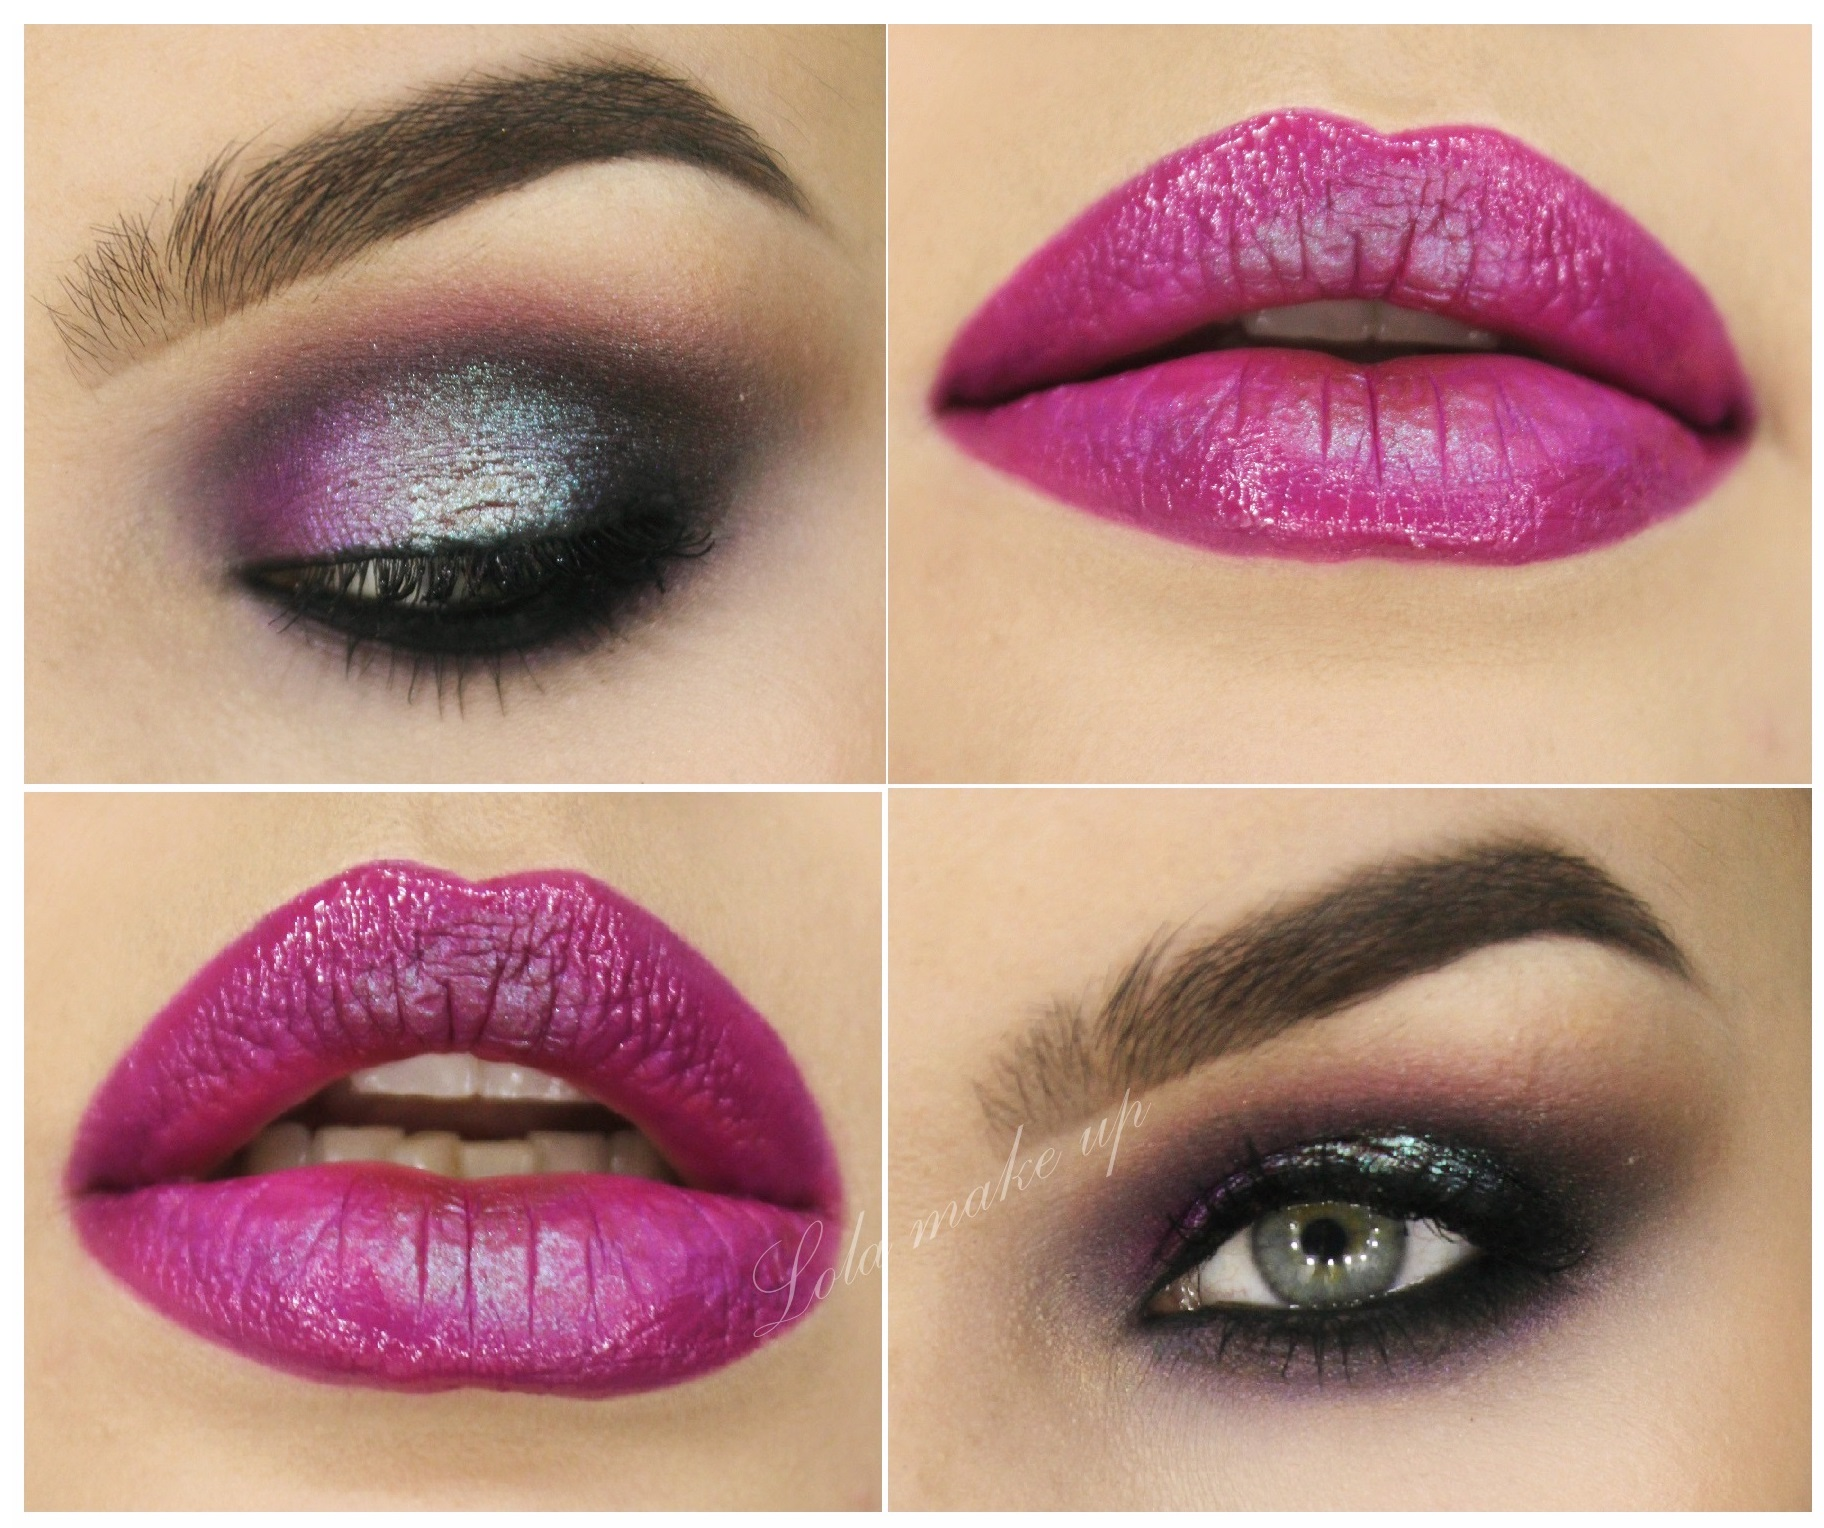 tips for beginners, makeup tips videos makeup tips and tricks makeup tips foundation how to apply make up makeup tips in urdu makeup tips for blue eyes bridal makeup tips makeup tips for beginners